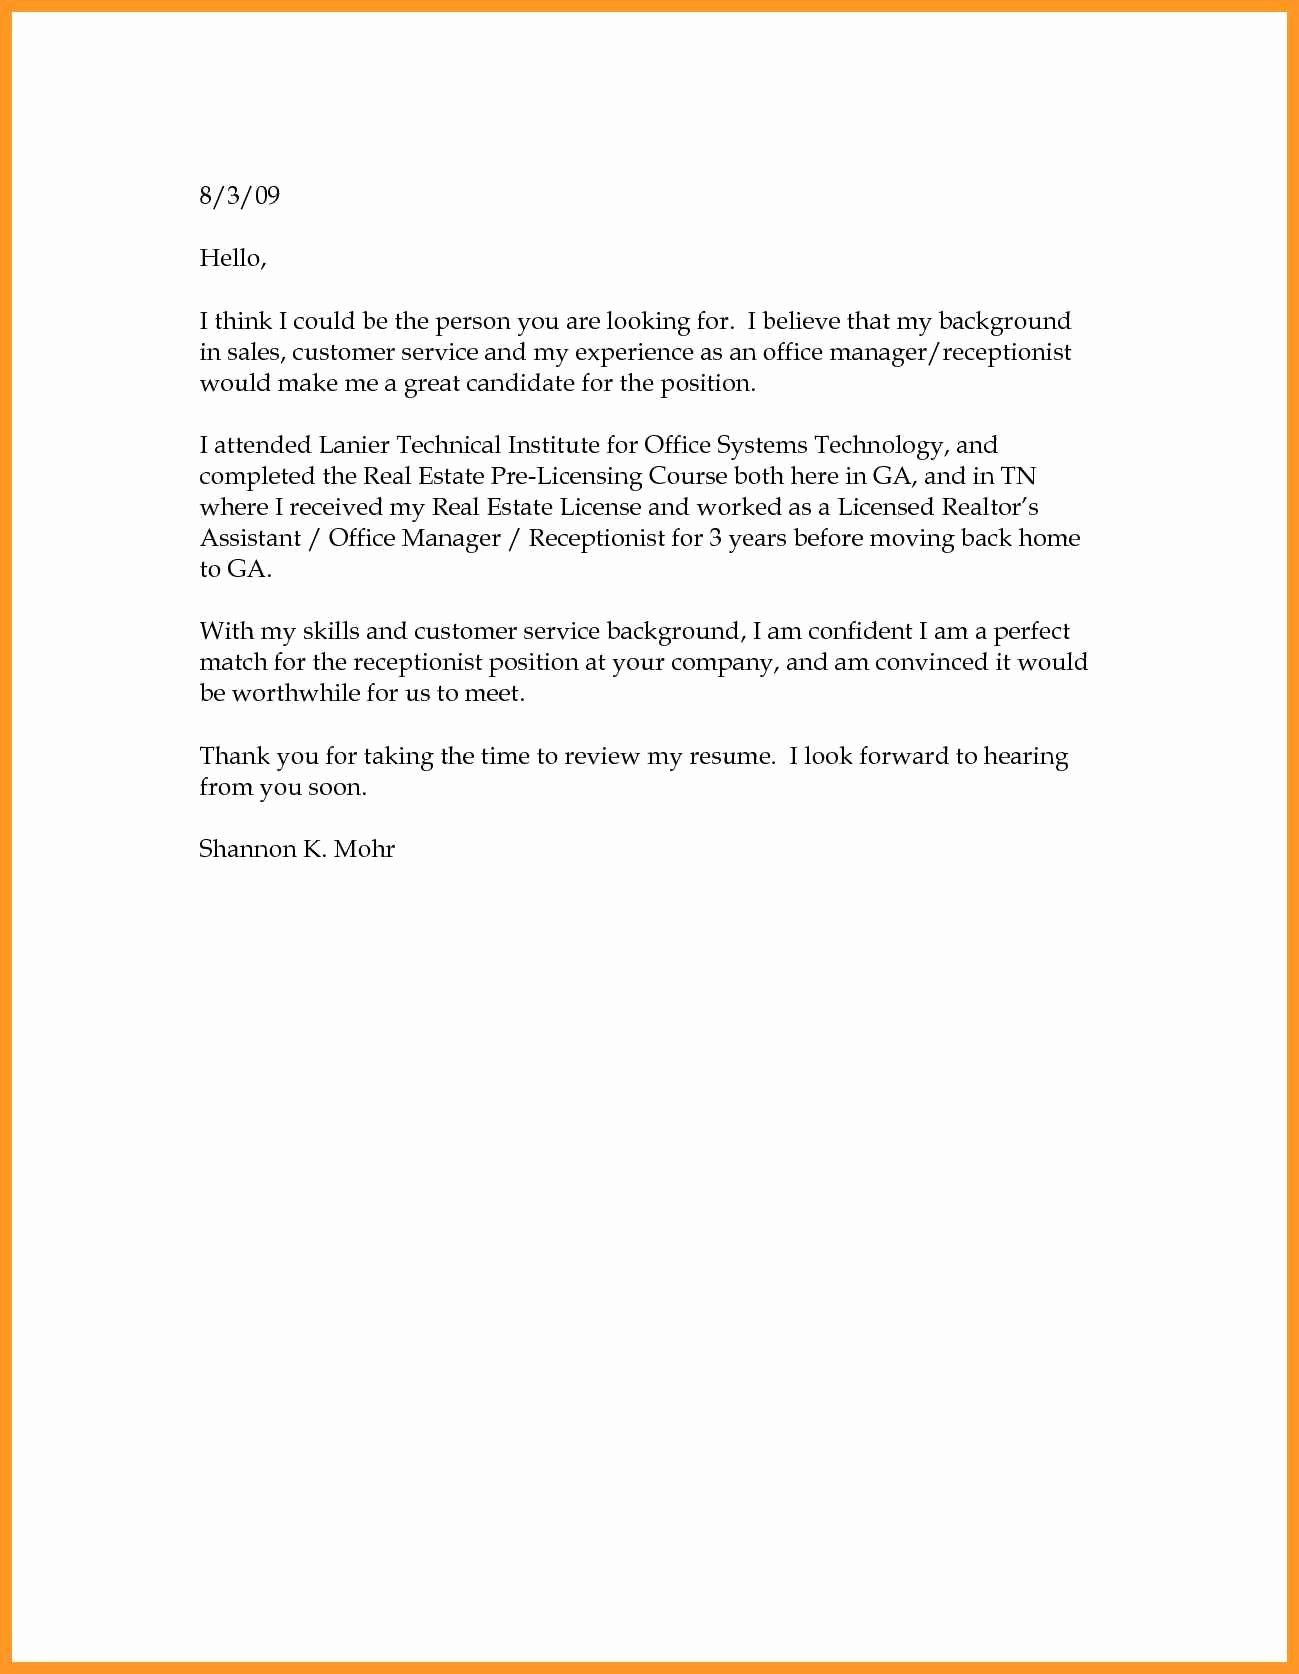 Simple Resume Cover Letter Template Fresh Simple Cover Letter Template Oursearchworld